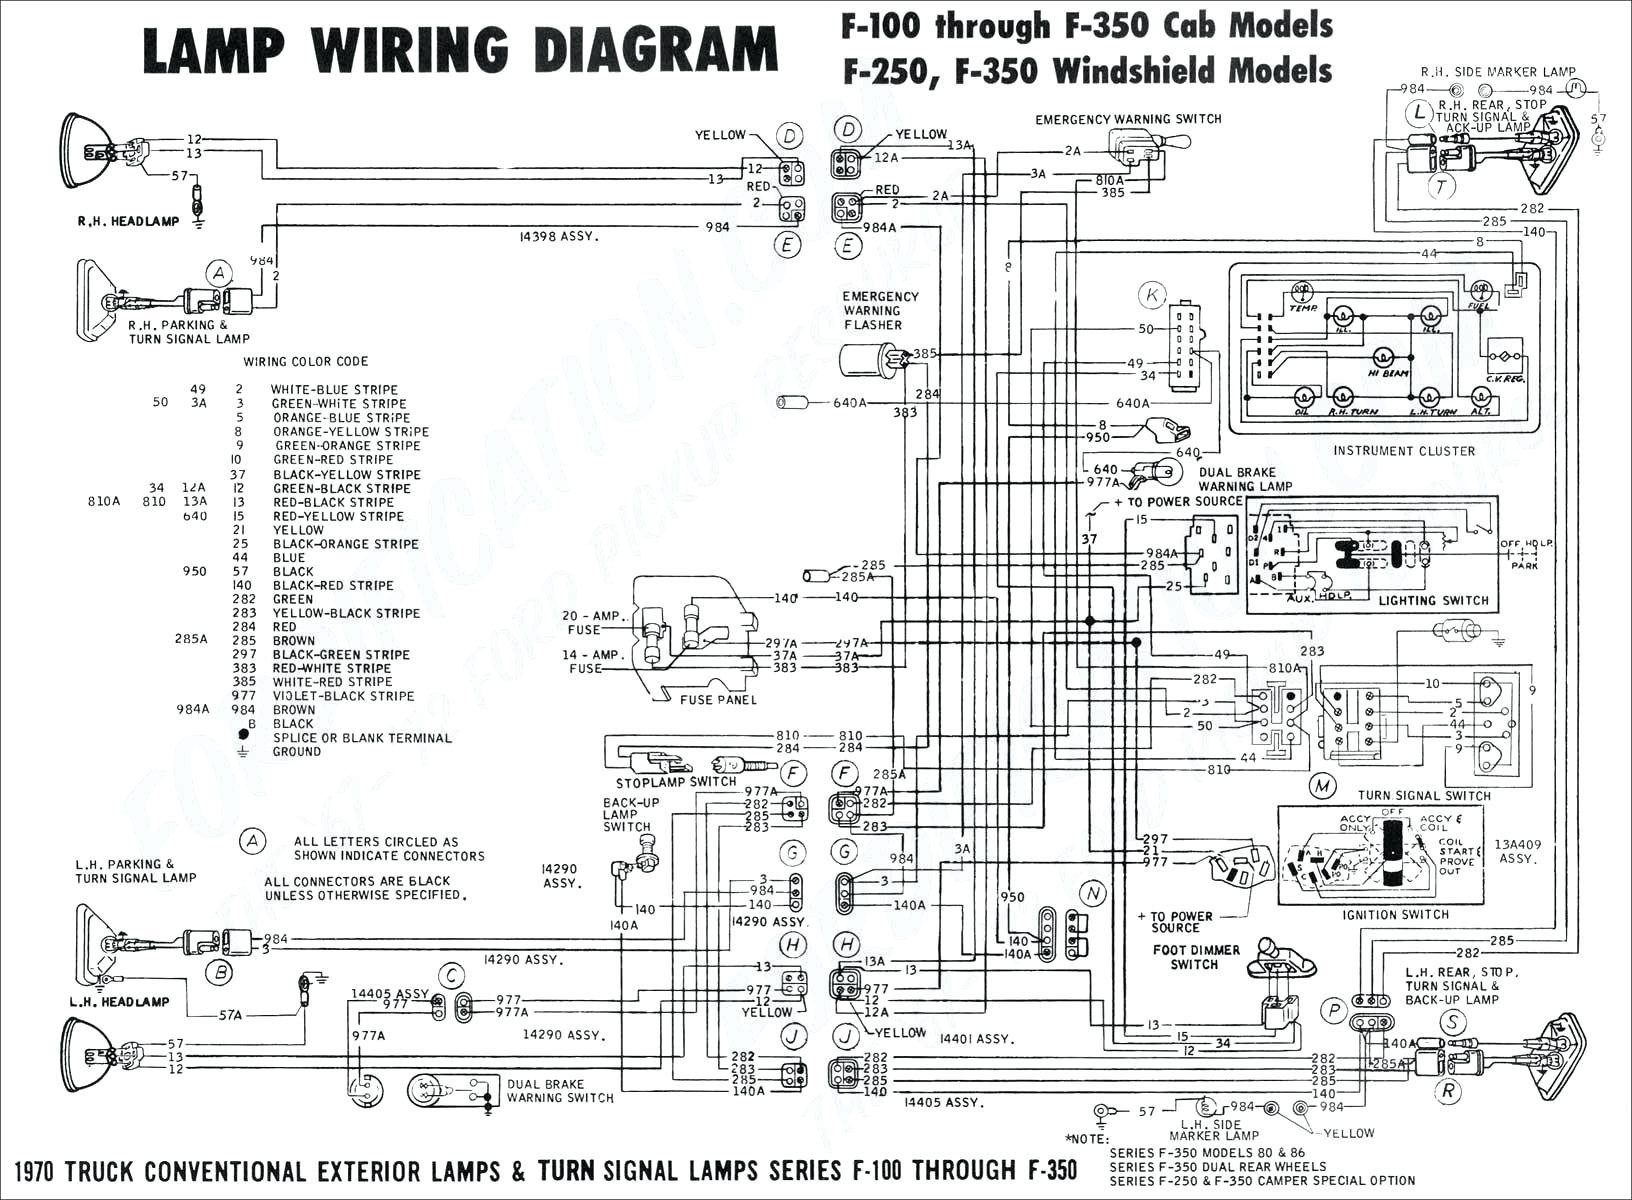 Wirin Diagram Of toyota Corolla 2005 Pool Light Wiring Diagram